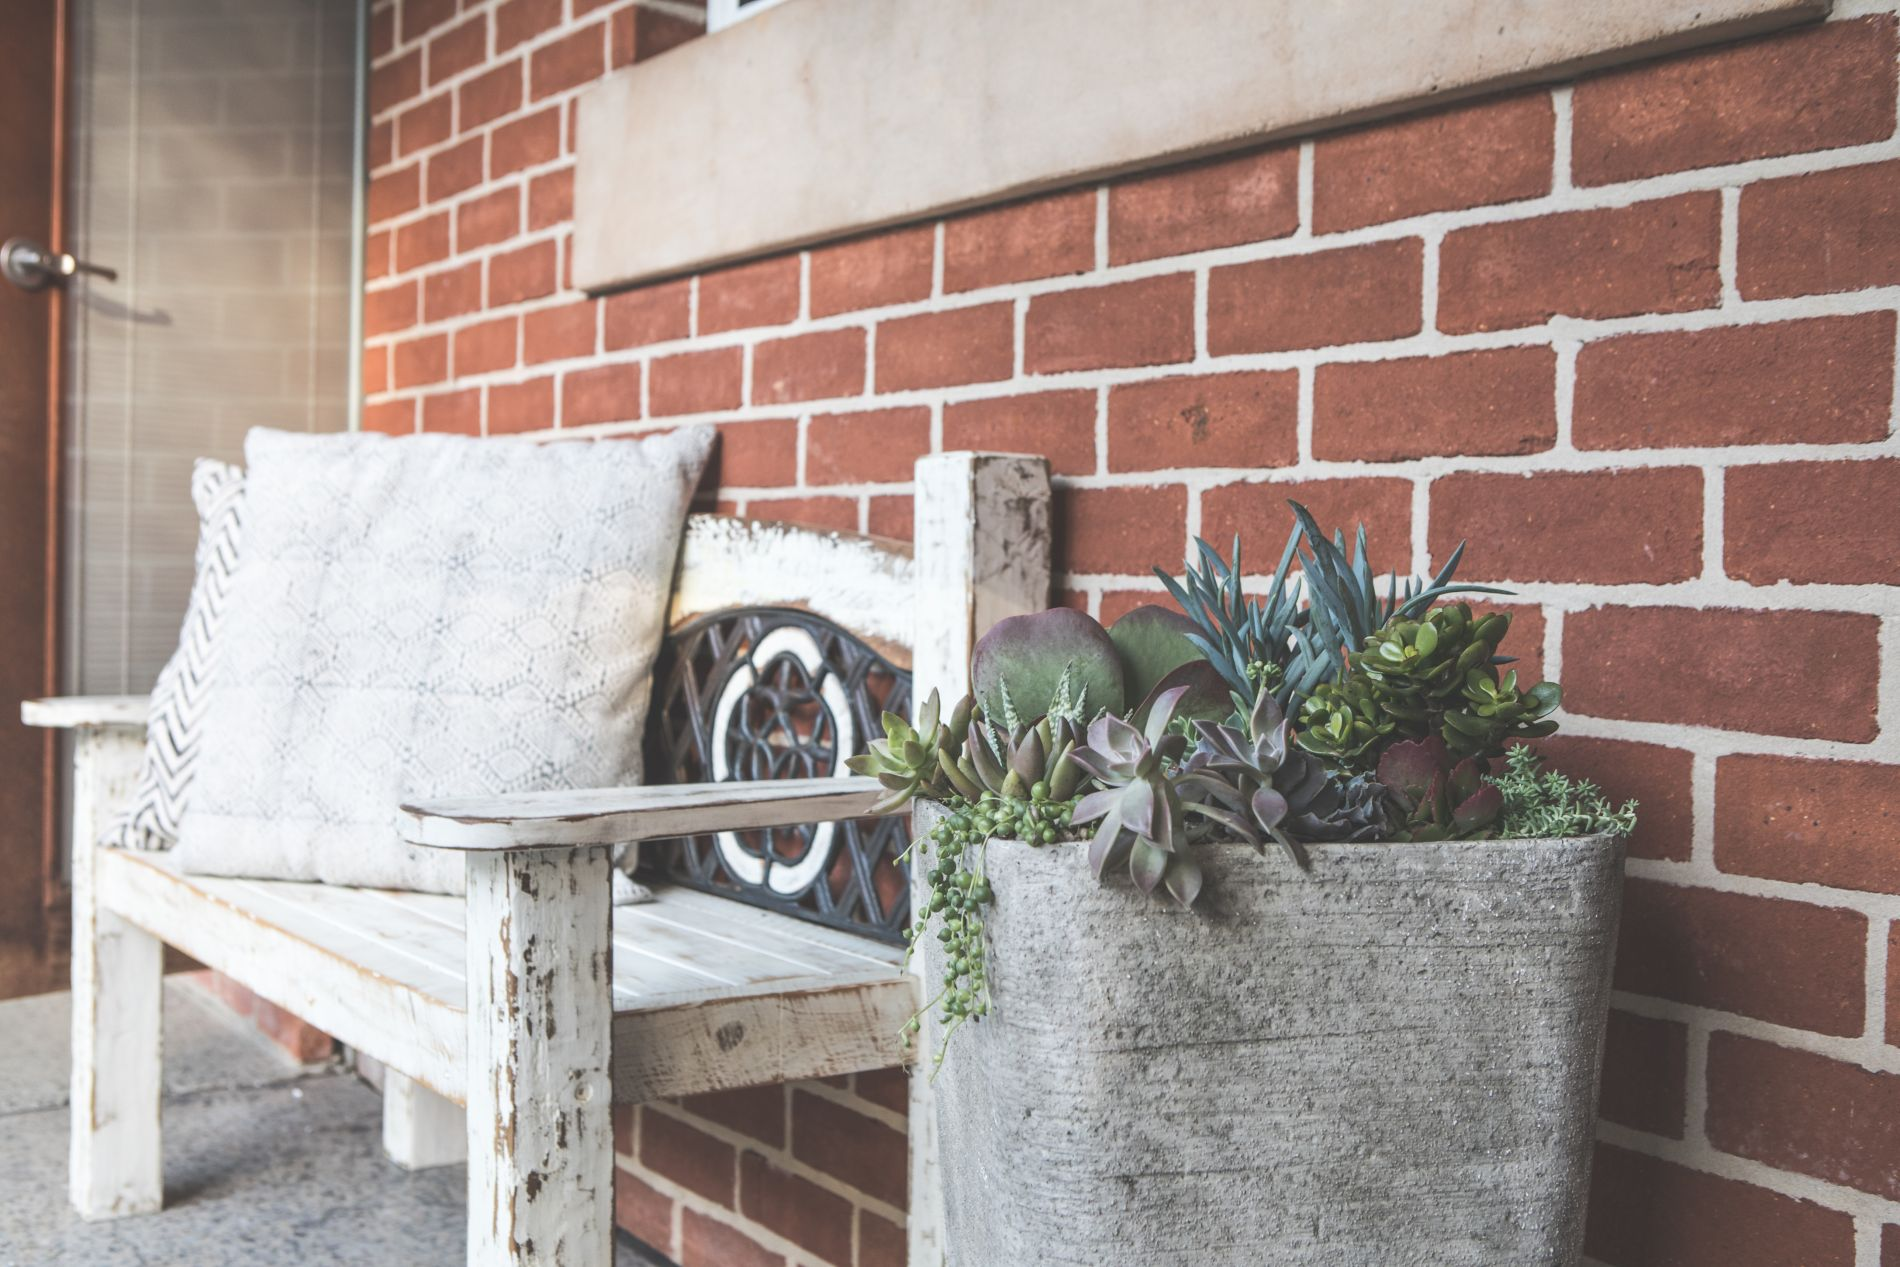 Succulent pot plant next to boho weathered bench against red brick wall